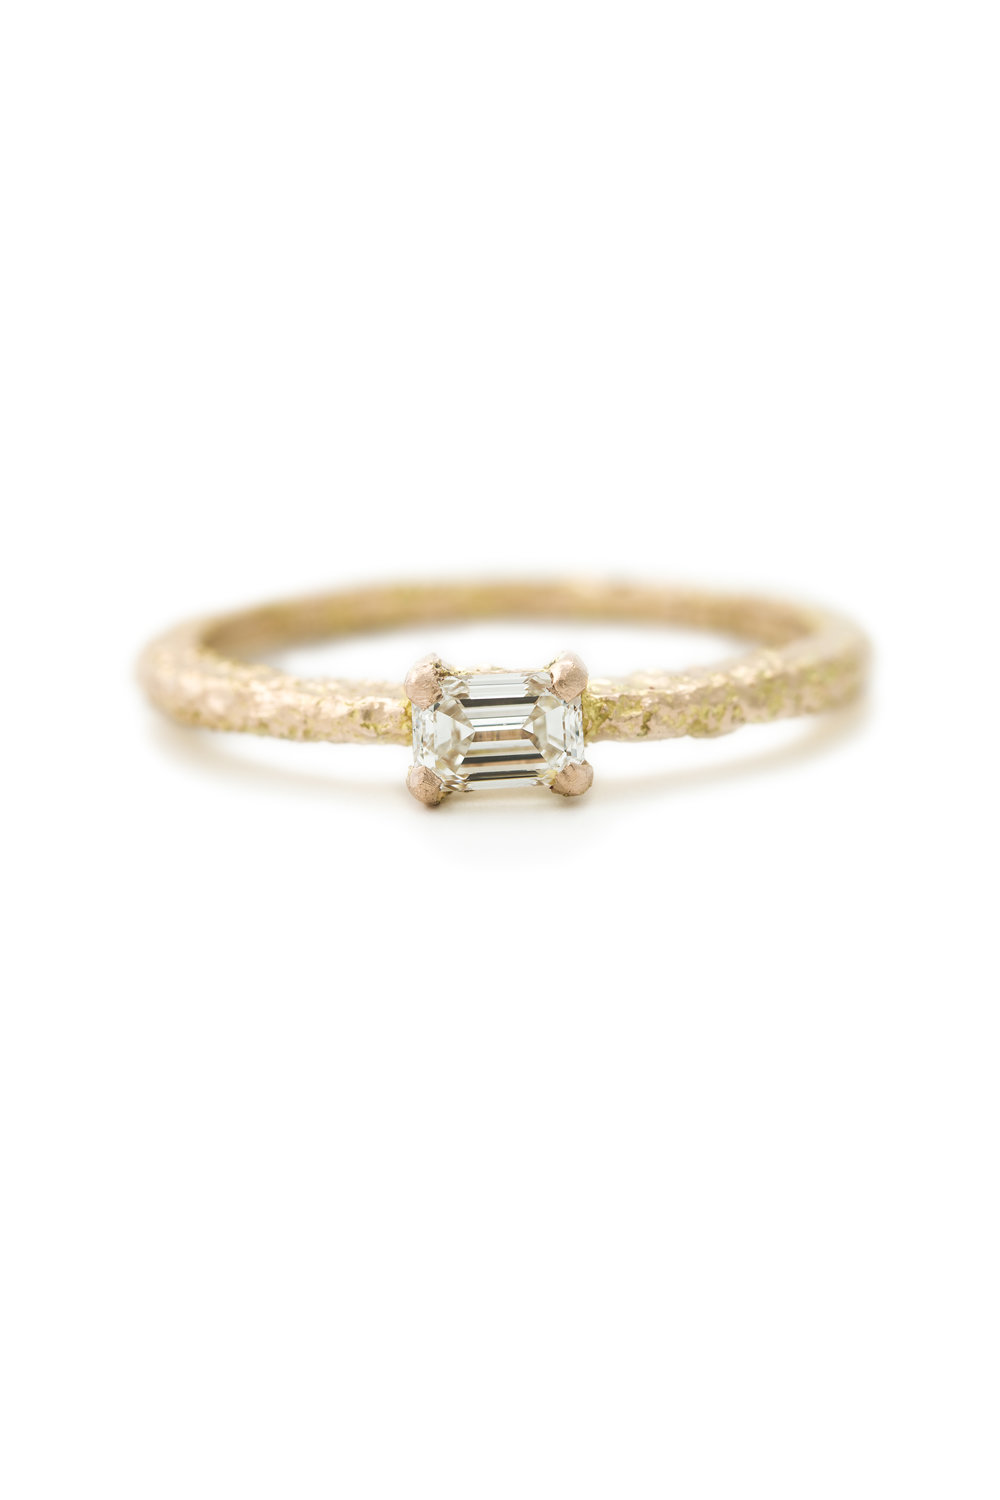 White emerald cut diamond ring in rose gold, £2860